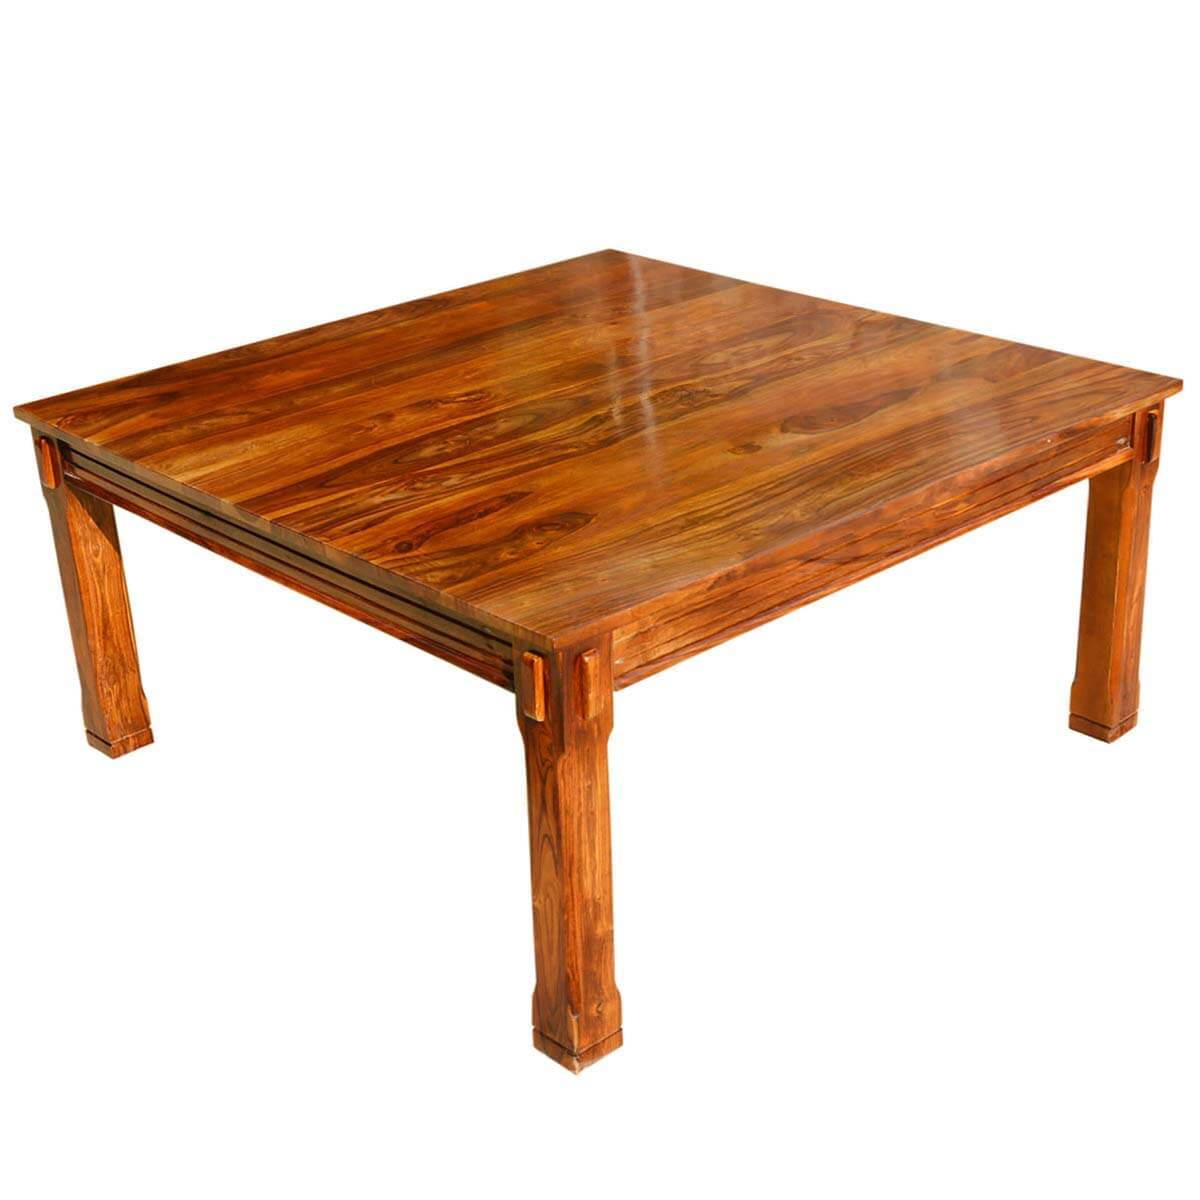 Rustic solid wood square block legs dining table Rustic wood dining table